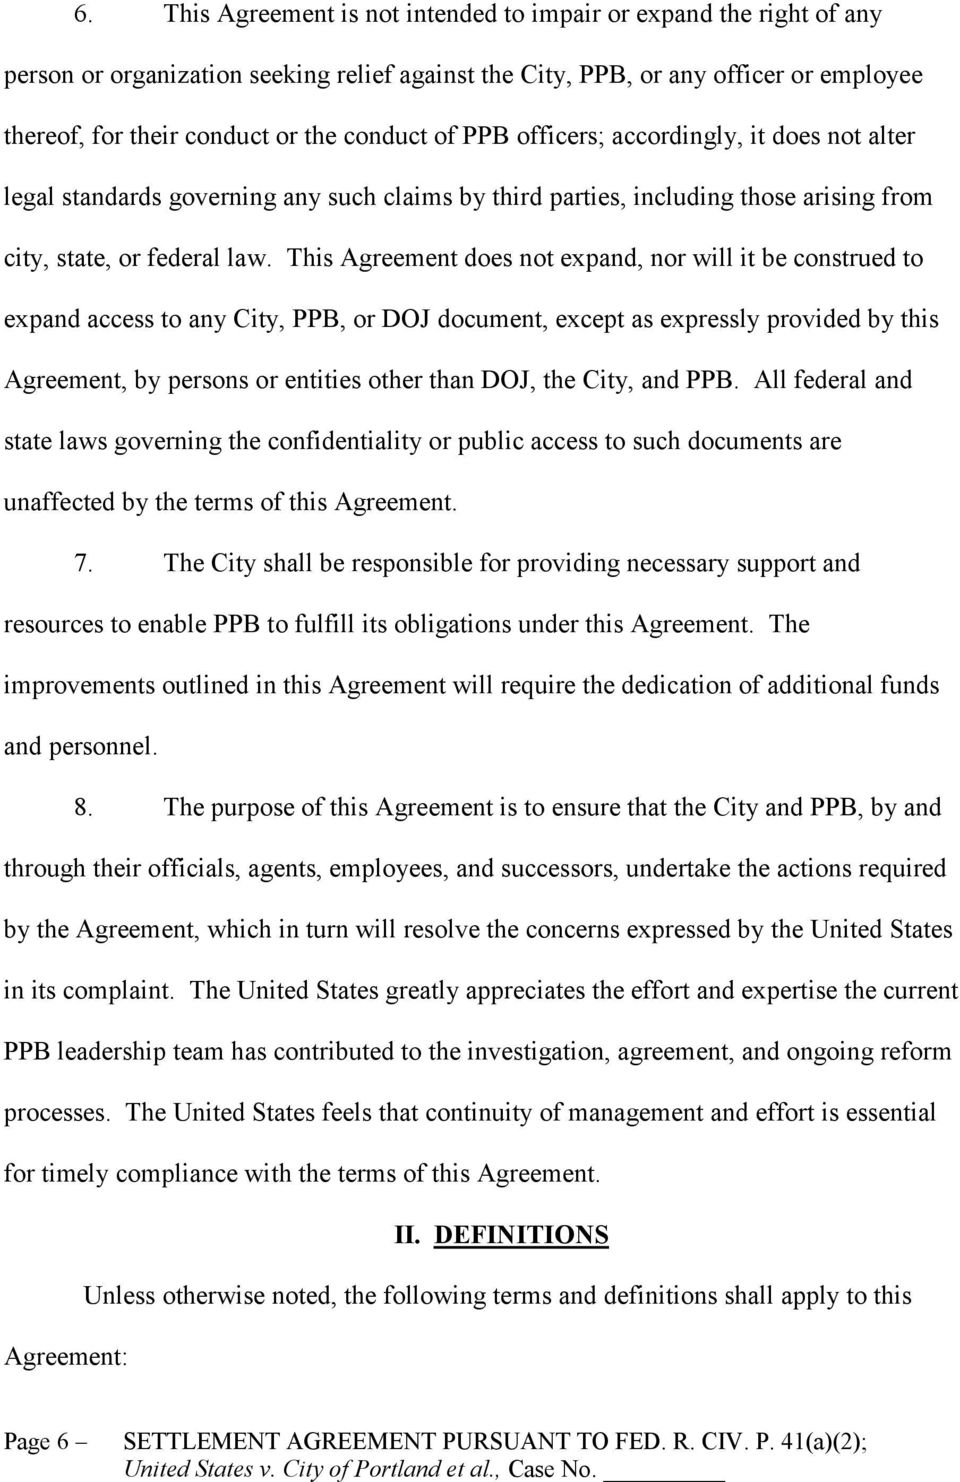 This Agreement does not expand, nor will it be construed to expand access to any City, PPB, or DOJ document, except as expressly provided by this Agreement, by persons or entities other than DOJ, the